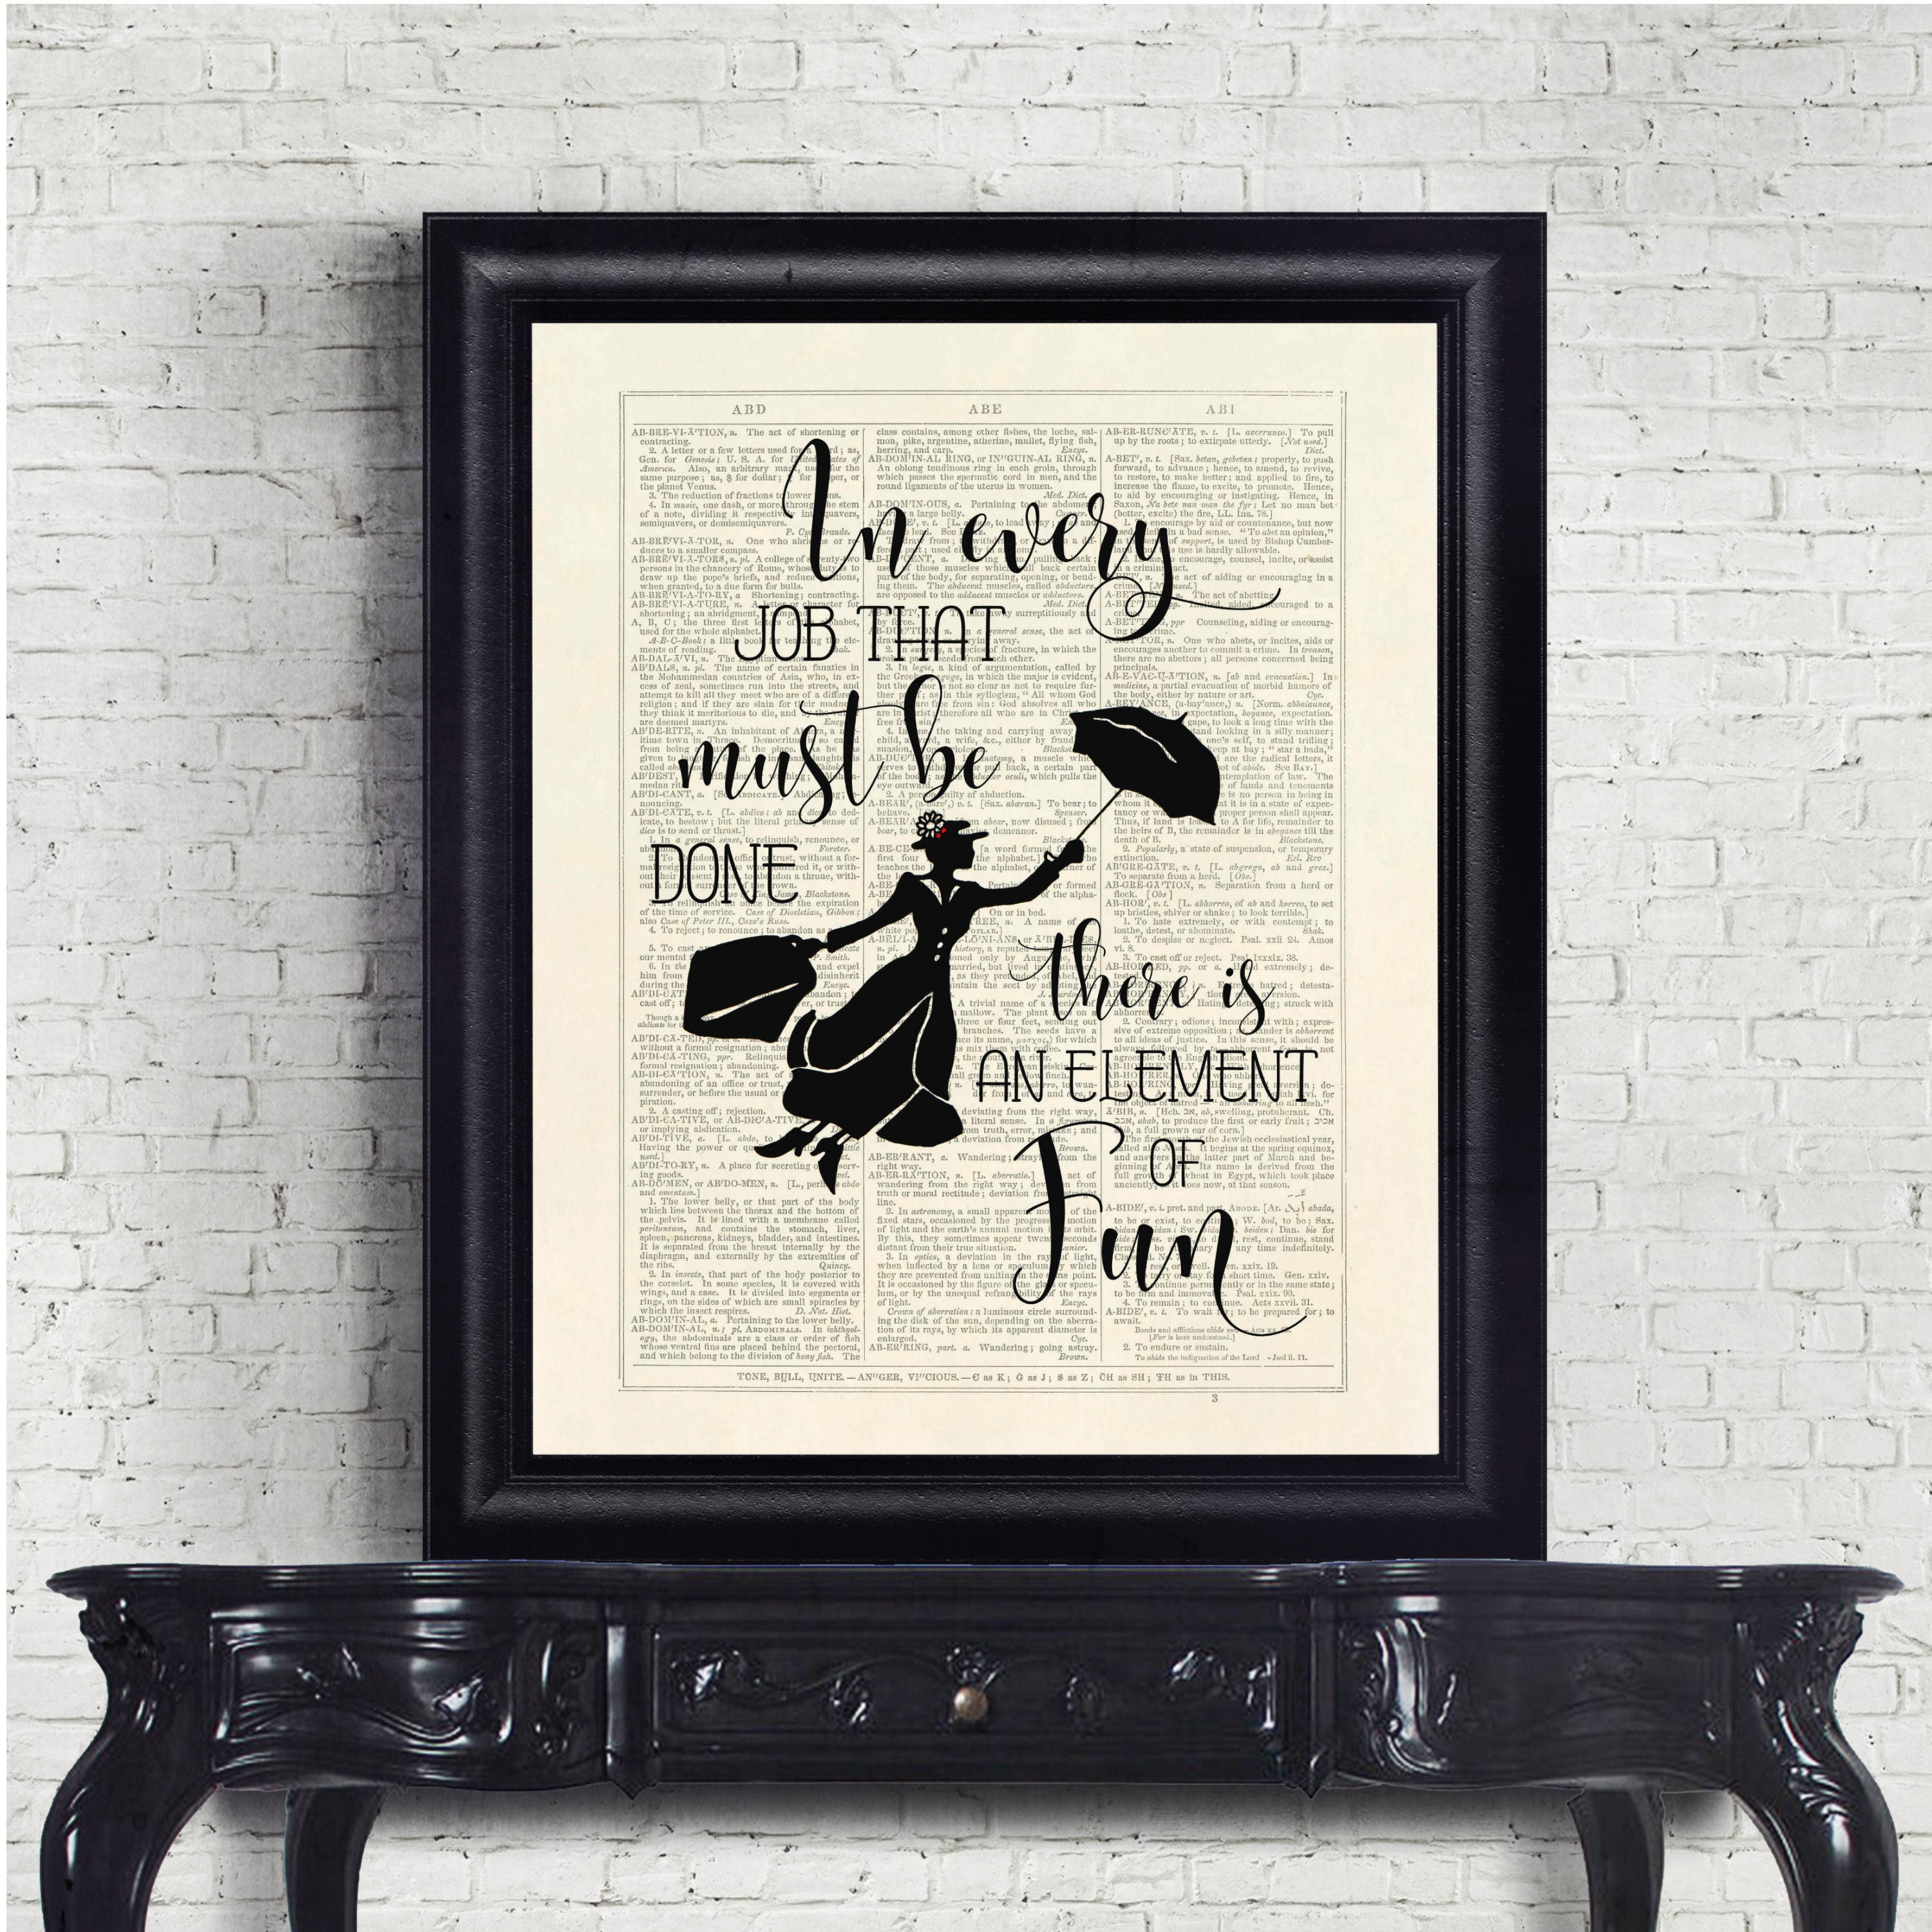 framed marry poppins quote over news print